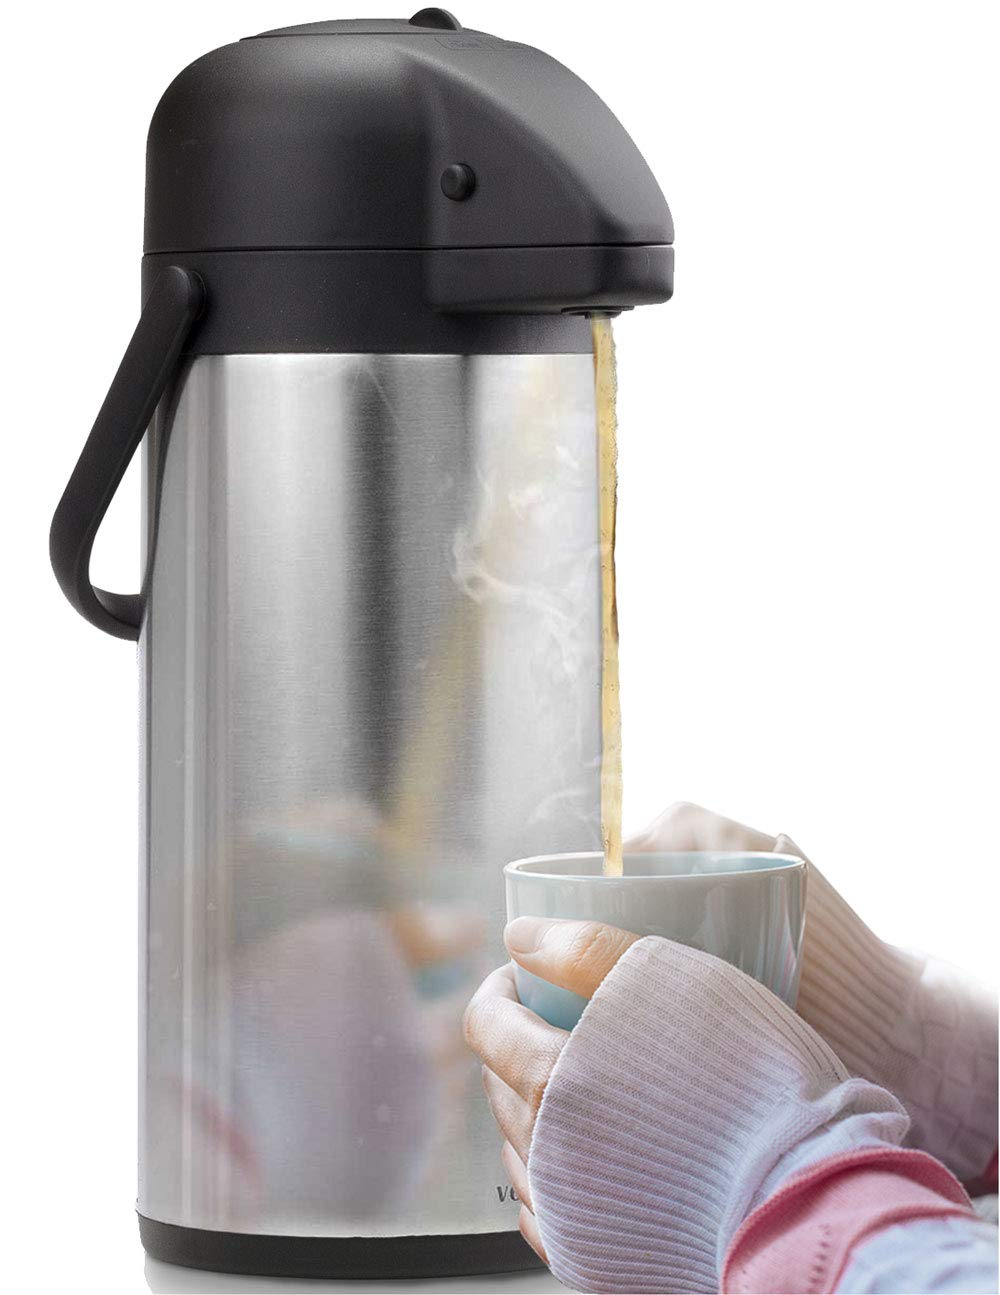 Airpot Coffee Carafe - Thermal Beverage Dispenser (102 oz.) By Vondior. Insulated Stainless Steel Coffe Thermos Urn For Hot/Cold Water, Pump Action Airpot, Party Chocolate Drink